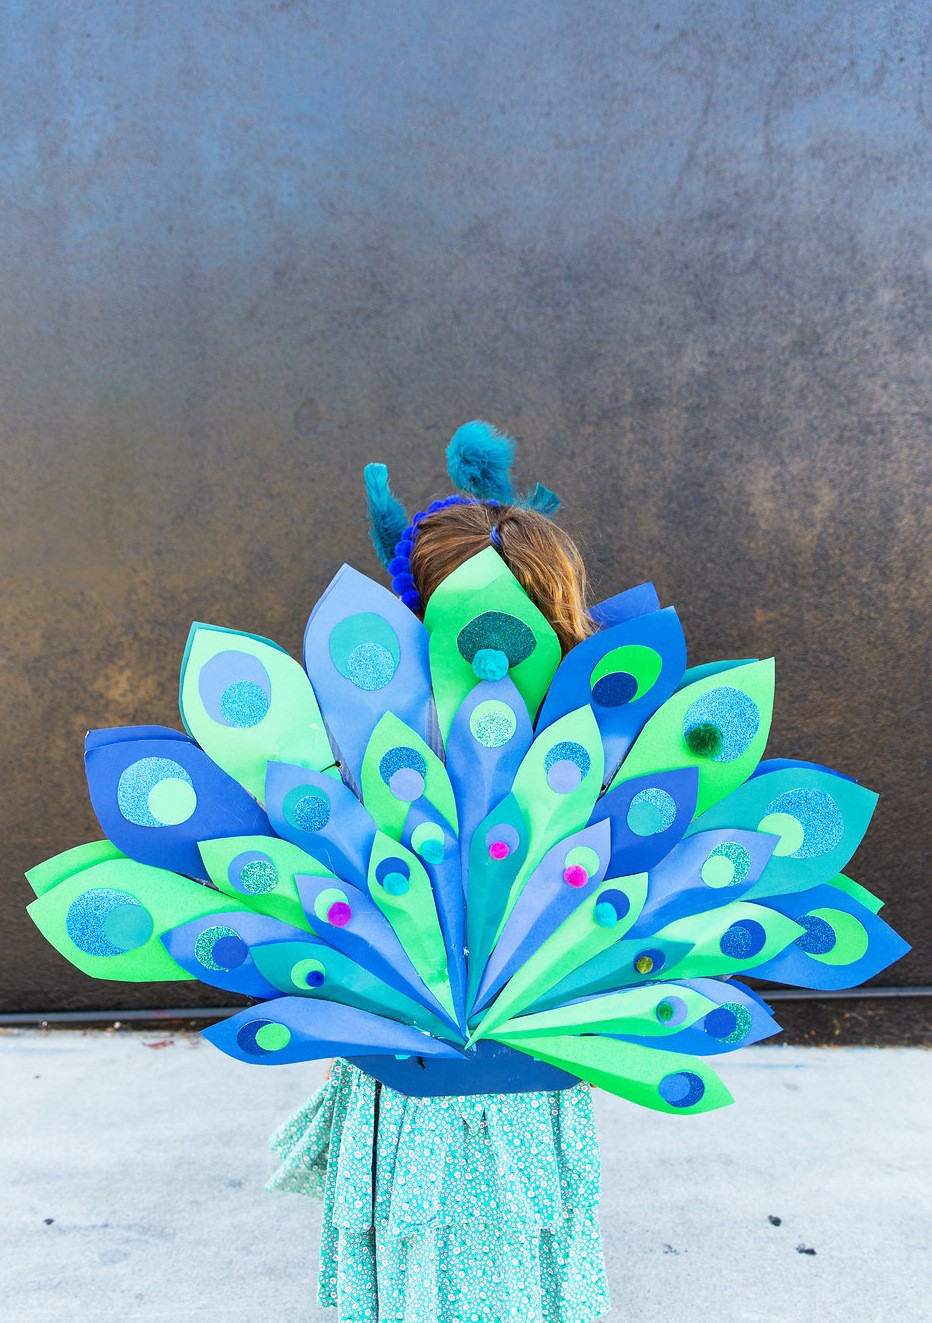 Best ideas about Peacock Costume DIY Kids . Save or Pin DIY Kids Peacock Halloween Costume The Effortless Chic Now.